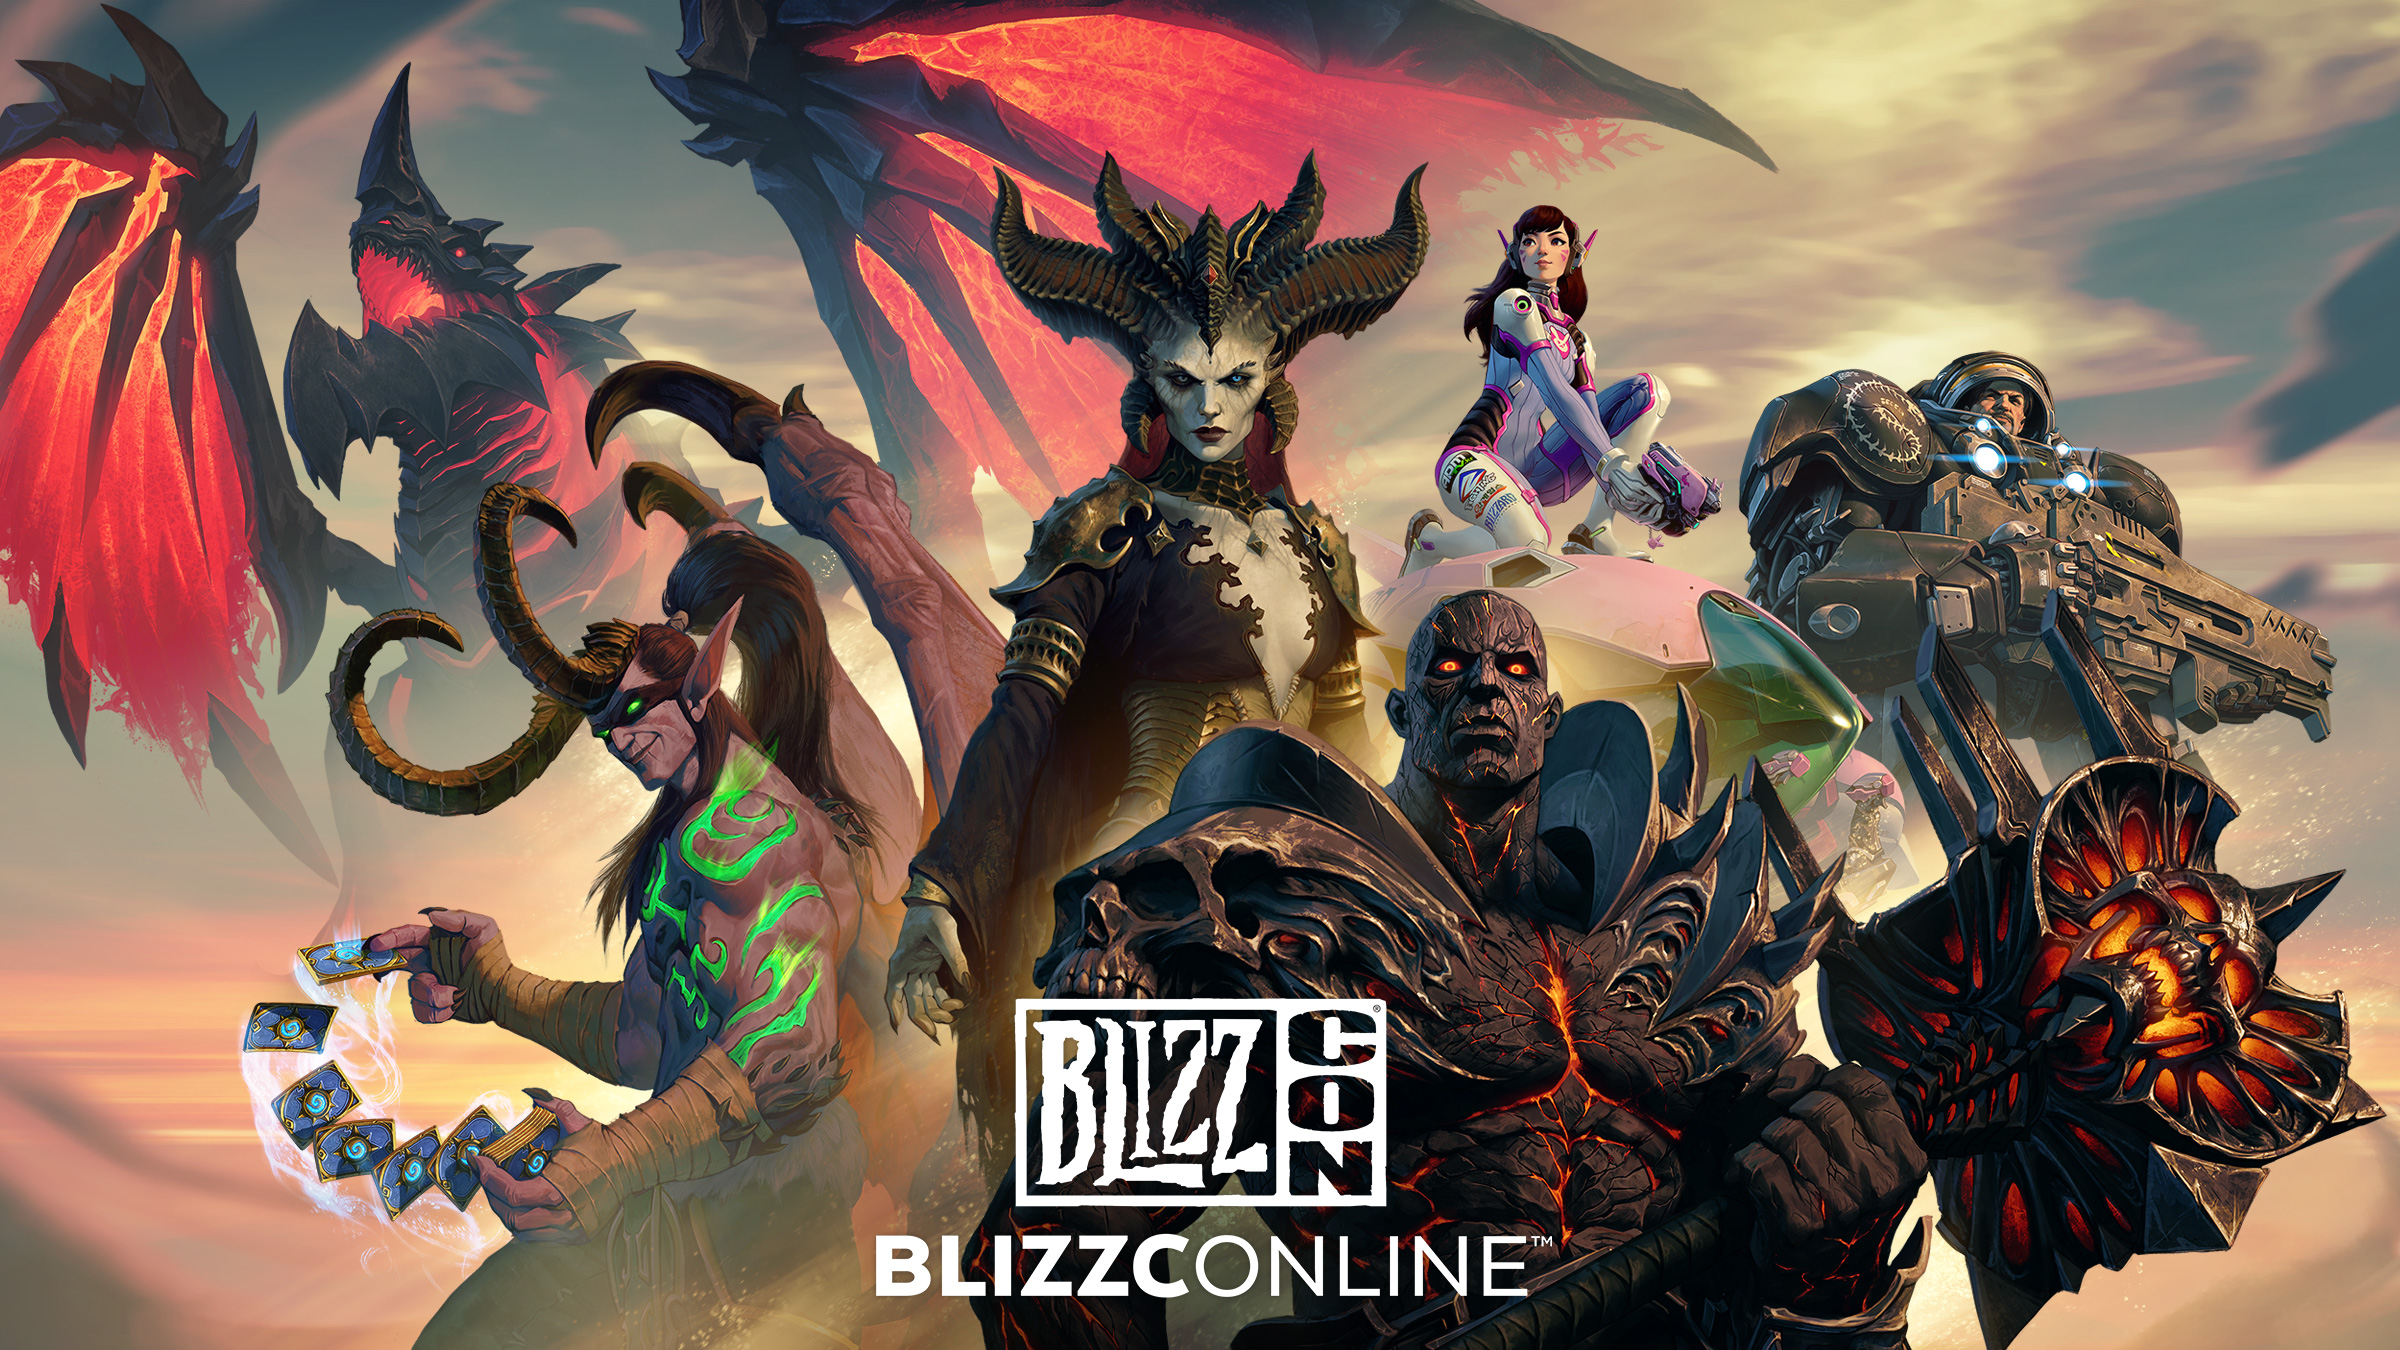 World of Warcraft at BlizzConline News Round-Up